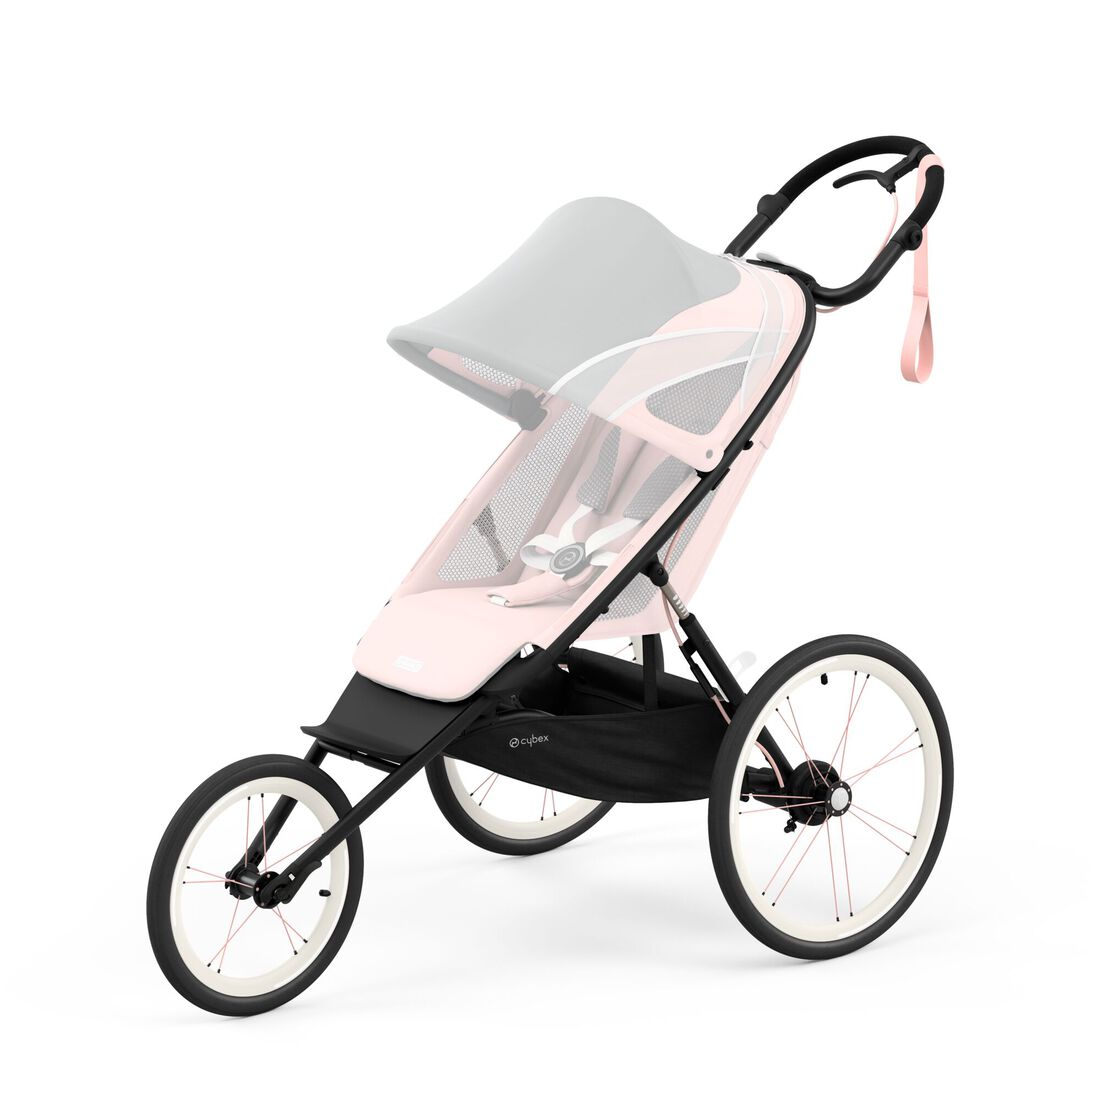 CYBEX Avi Frame - Black With Pink Details in Black With Pink Details large image number 2